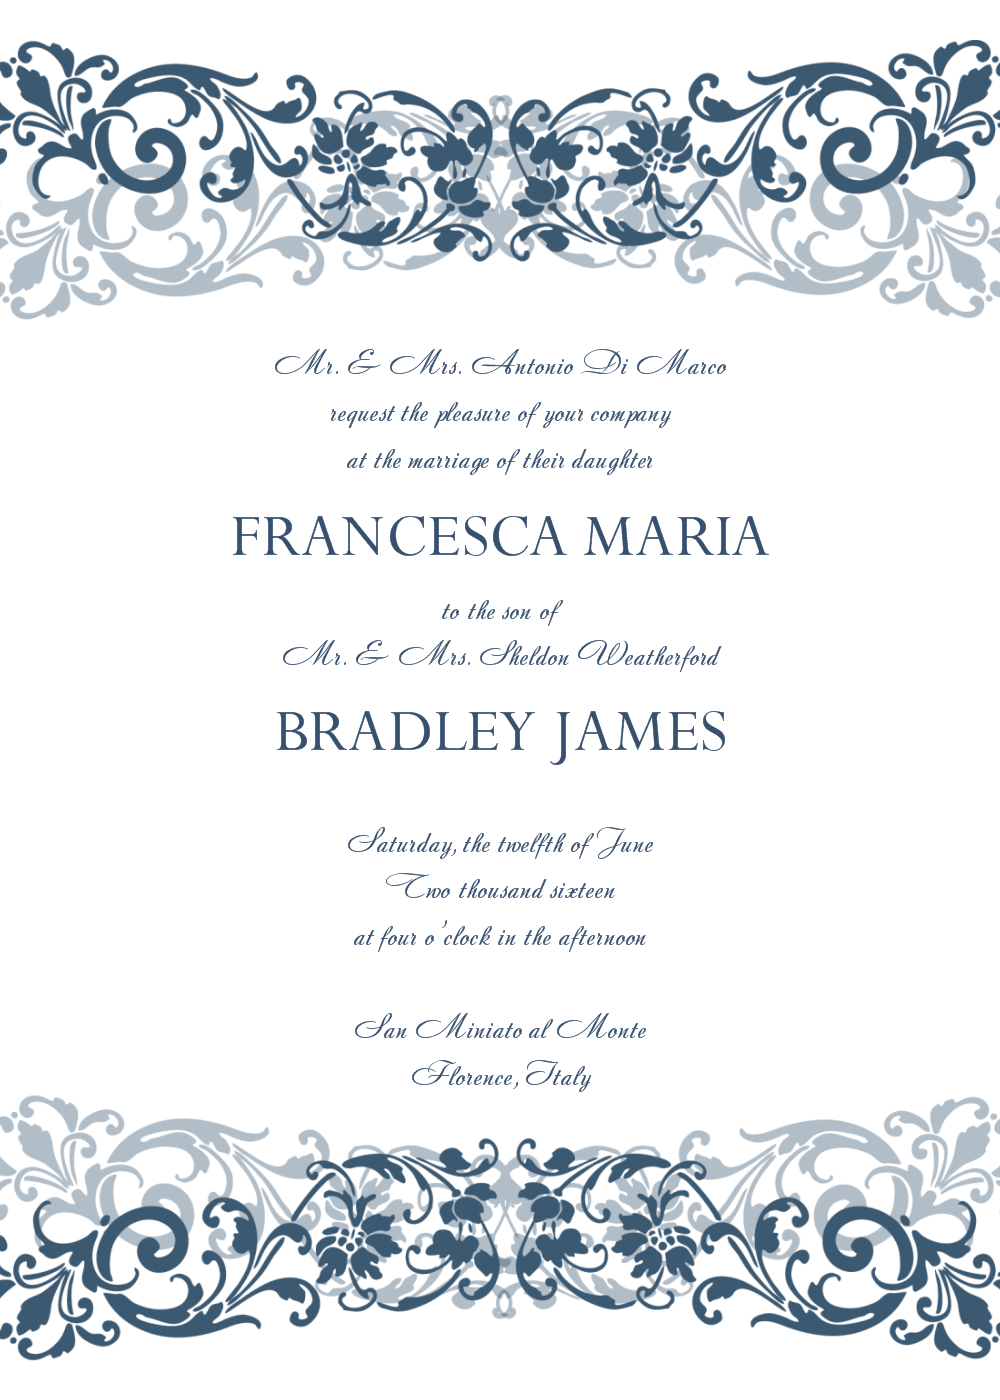 Free Wedding Invitation Templates For Word | Wedding Invitation - Free Printable Wedding Invitations With Photo